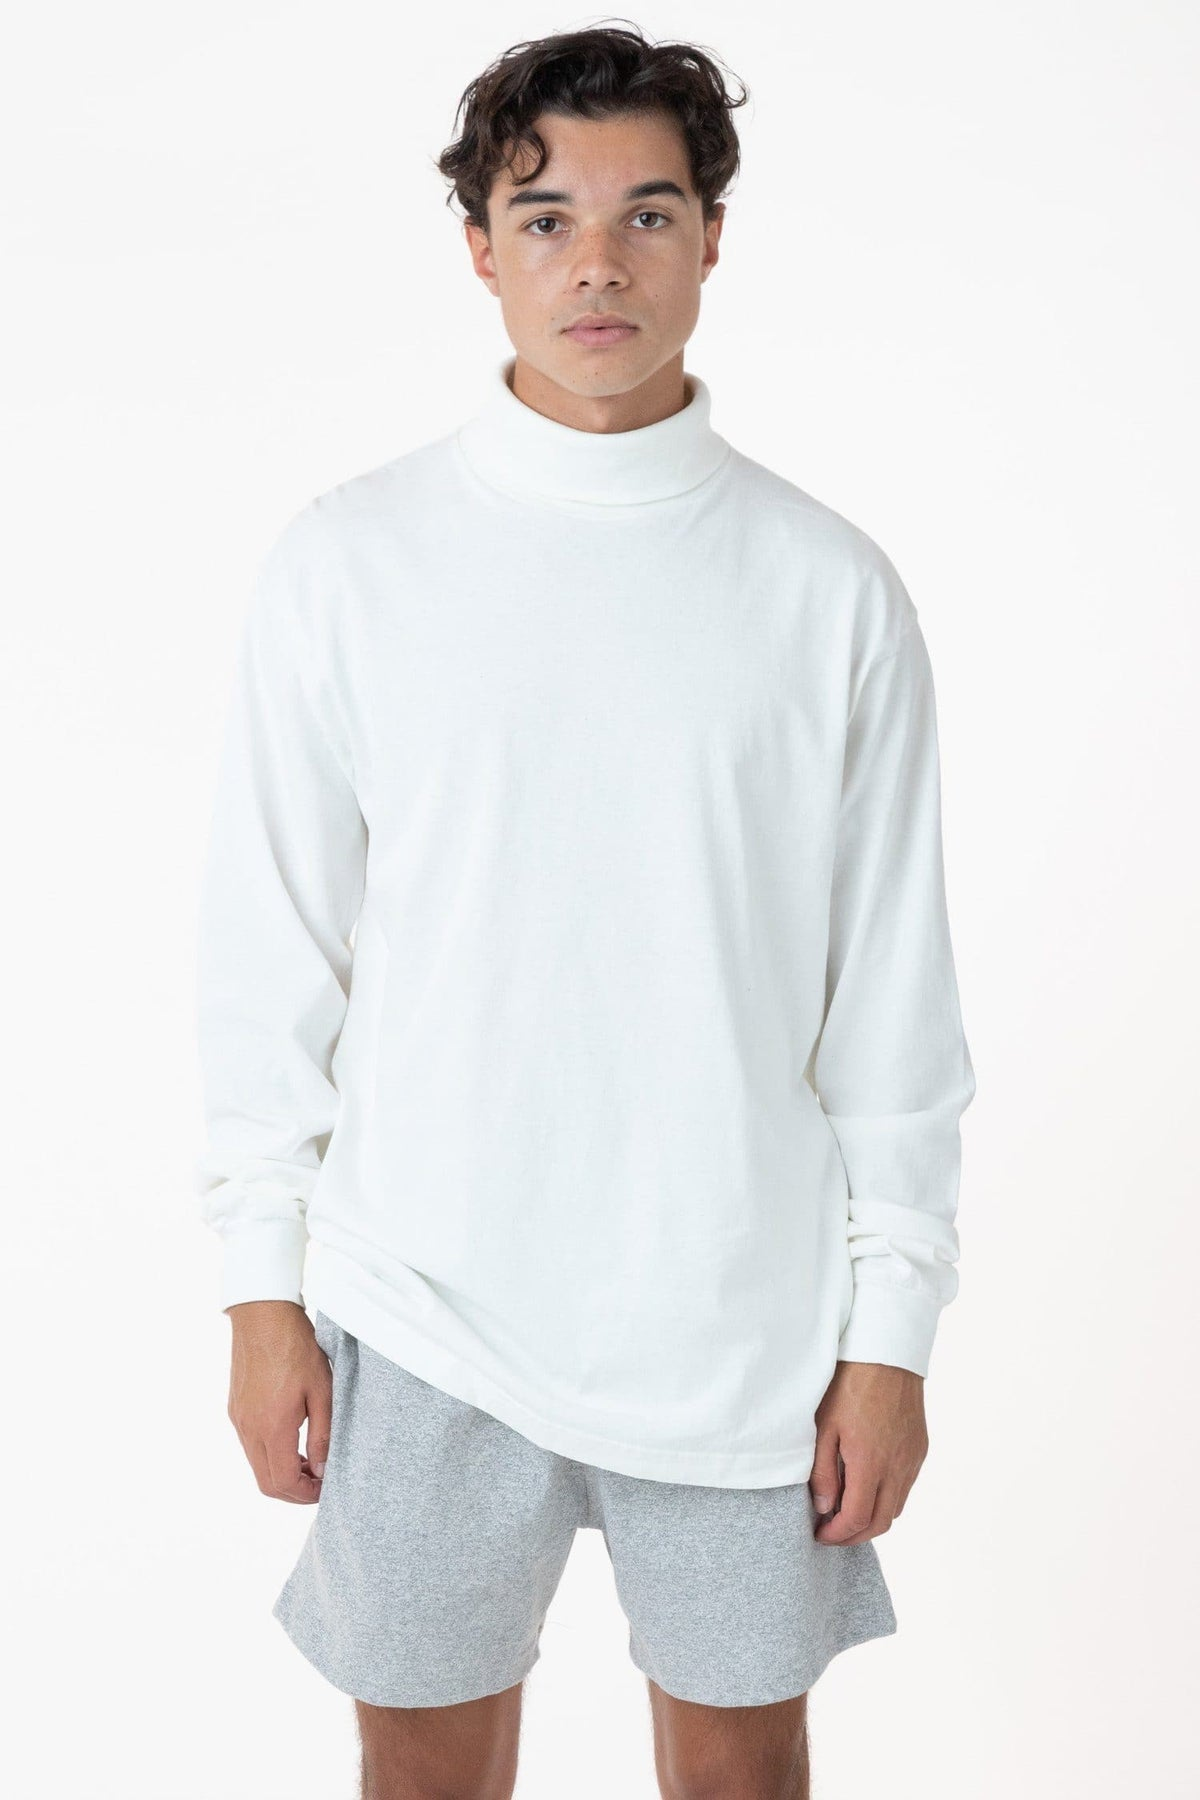 1811GD Unisex - Long Sleeve Garment Dye Turtleneck